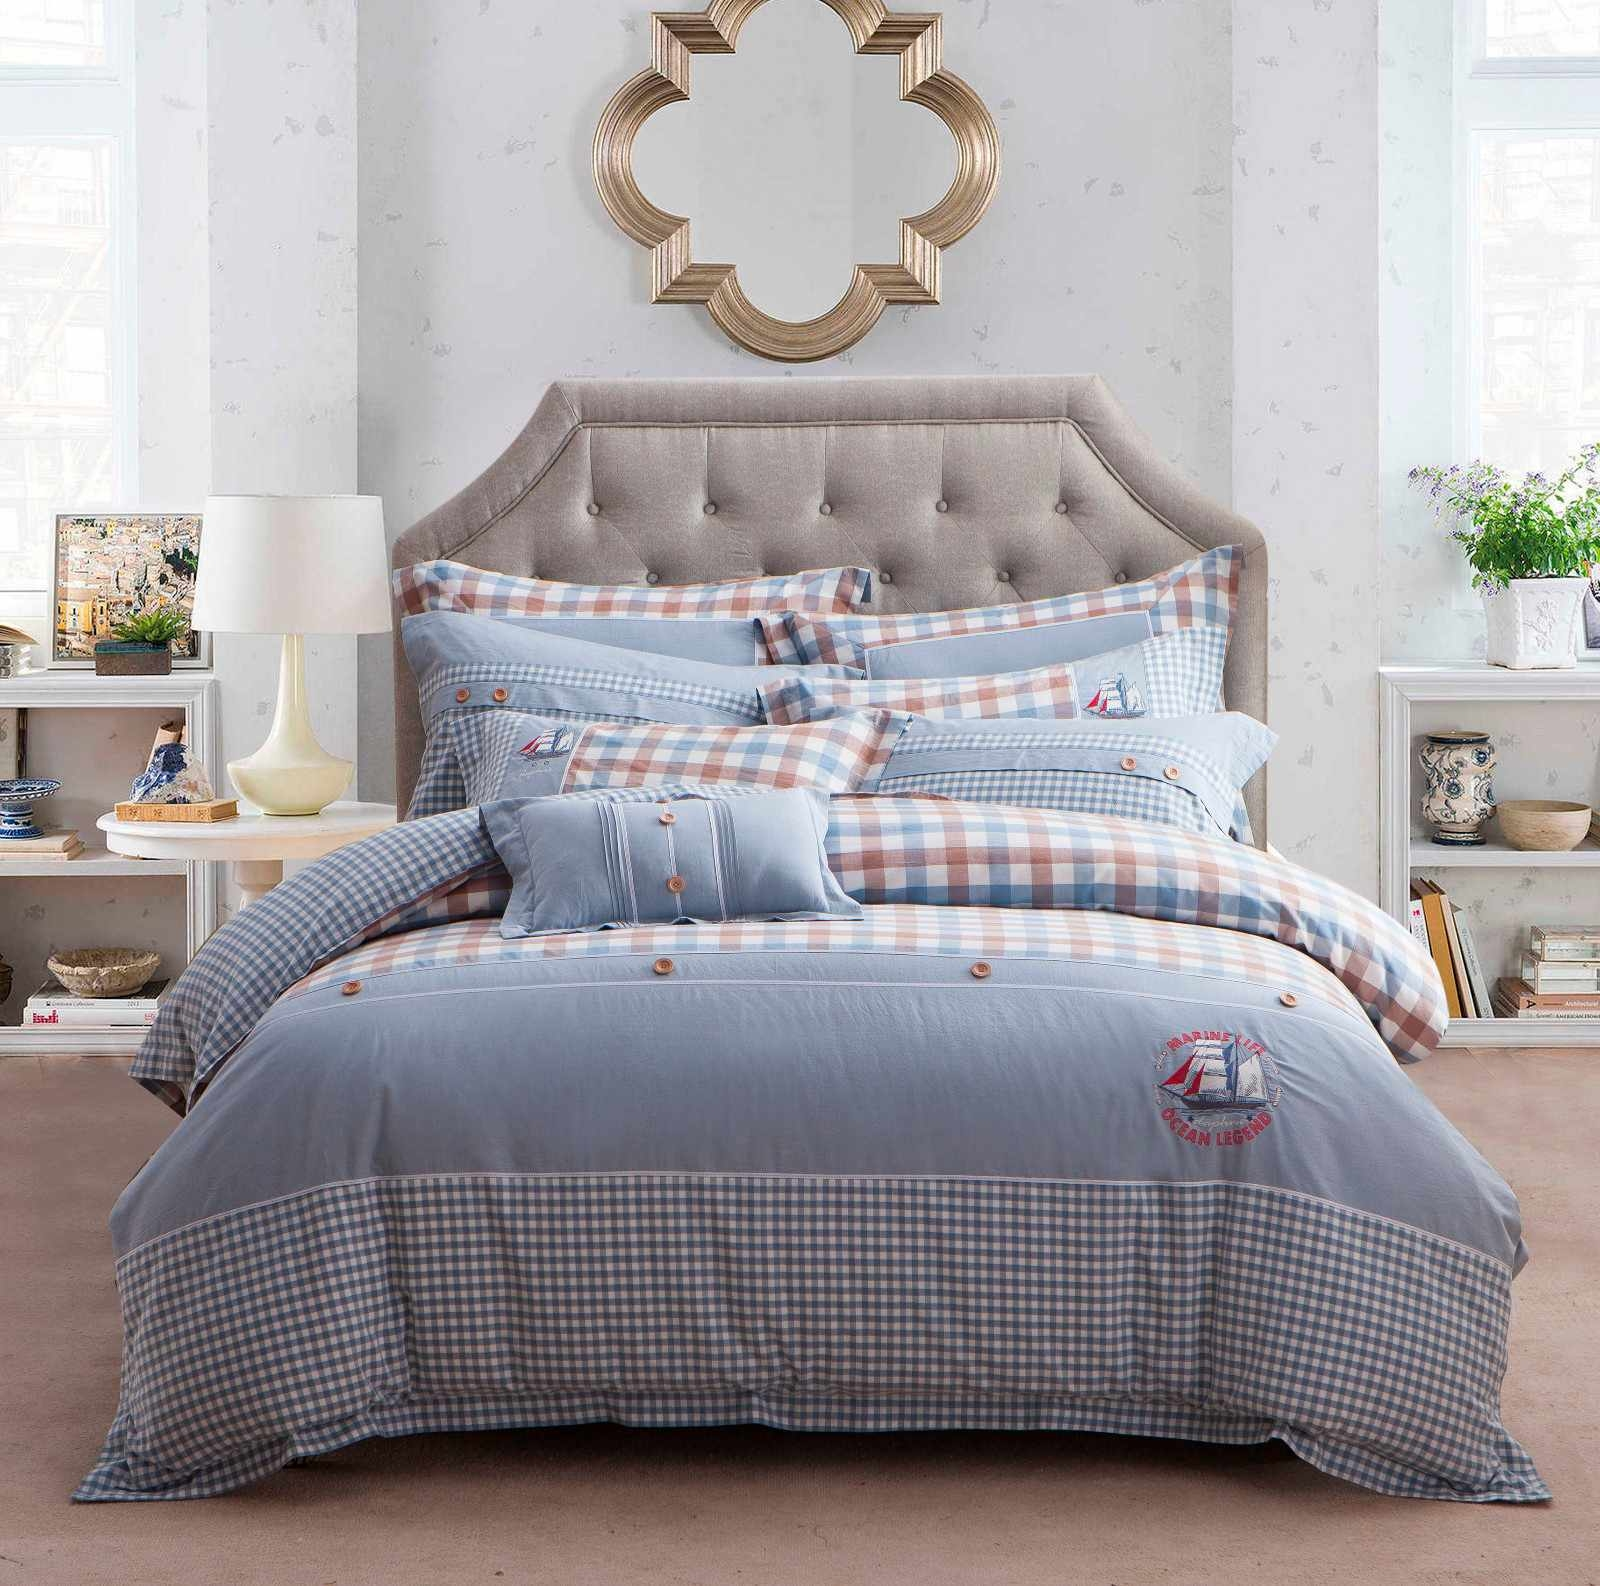 patterns embroidery daphne 100 cotton bedding sets Daphne